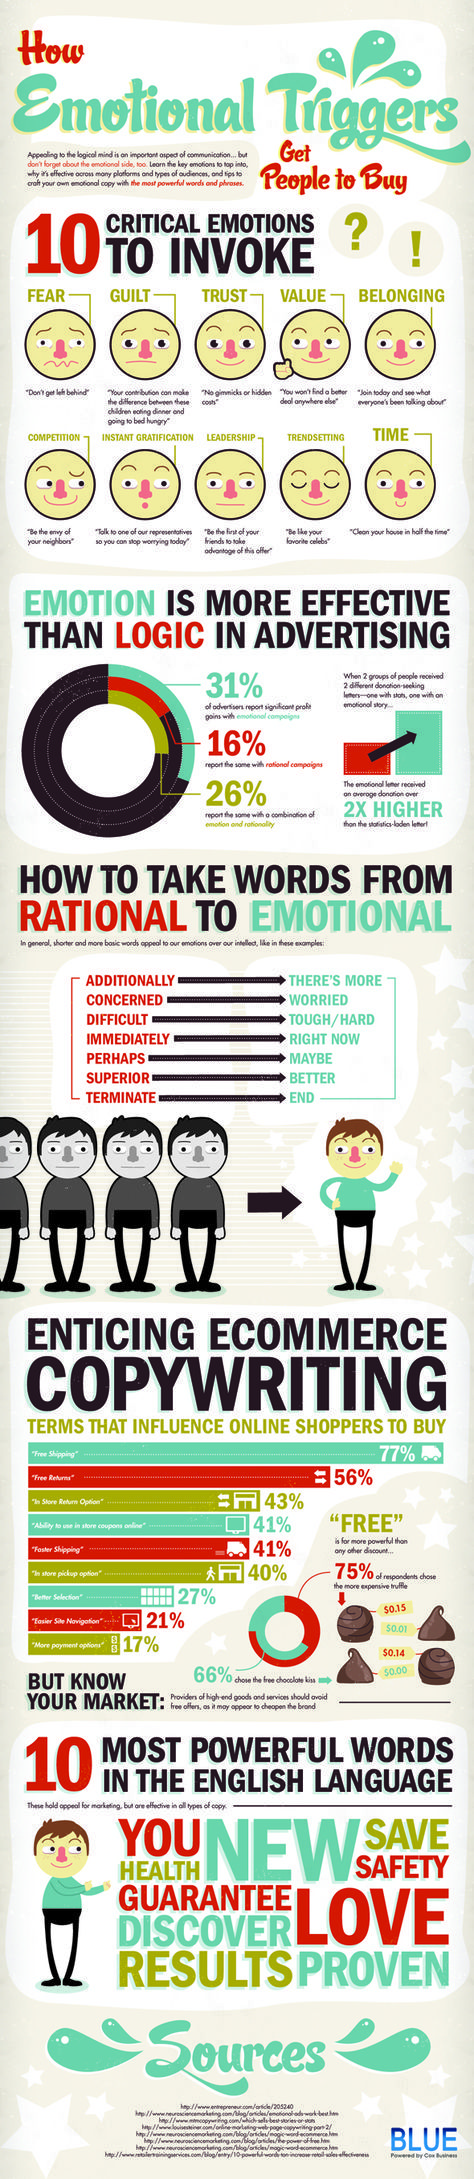 How Emotional Triggers Get People to Buy - Marketing and Copywriting